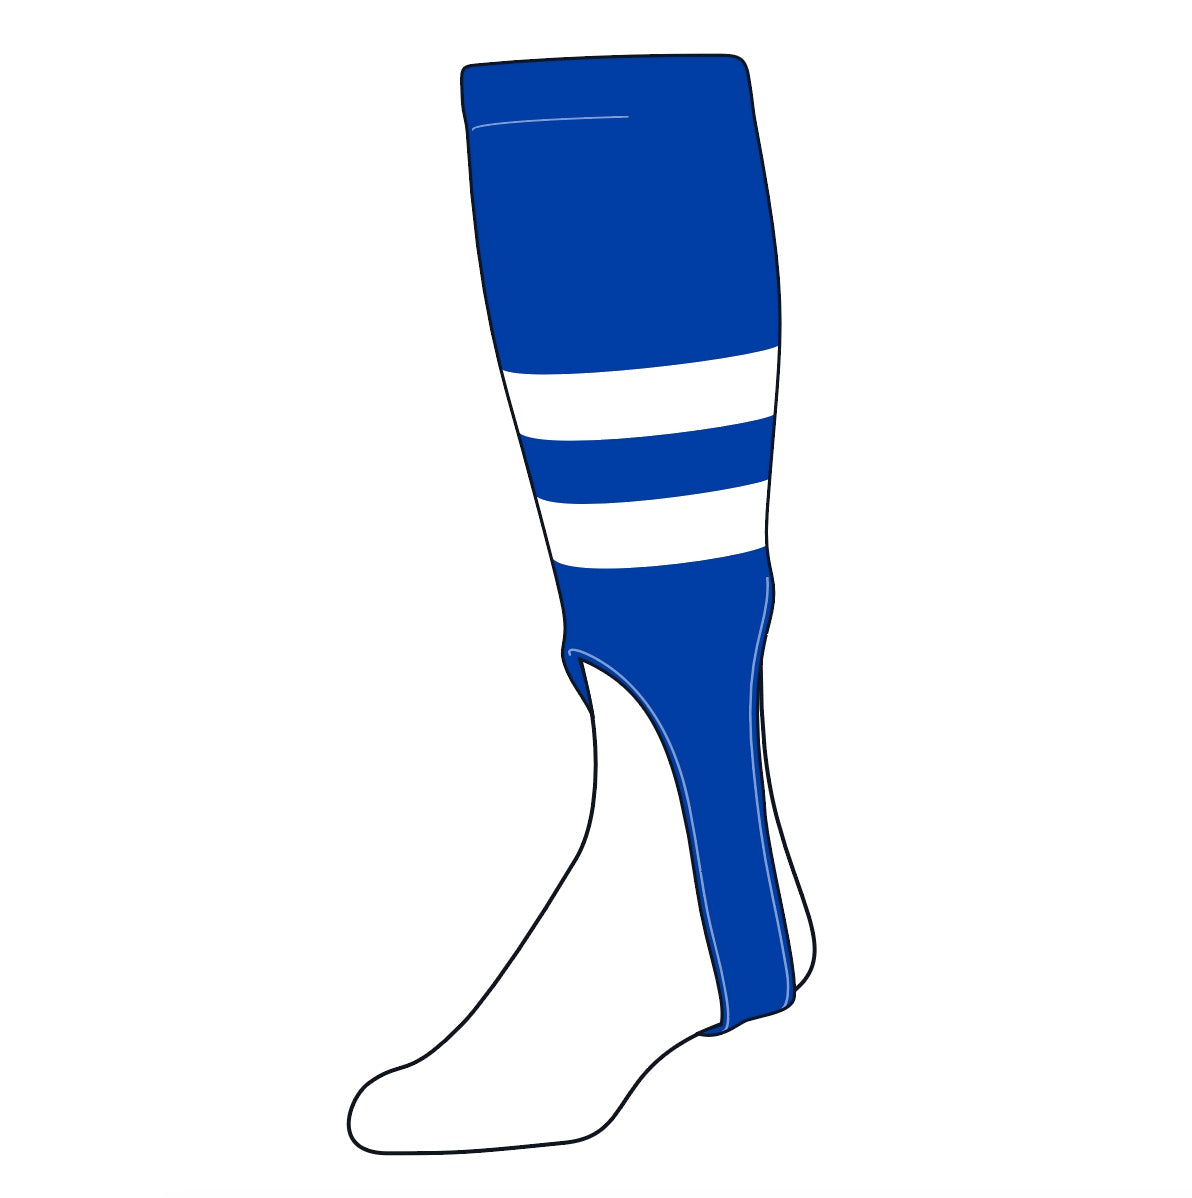 TCK Baseball Stirrups Medium (200G, 7in) Royal, White, Royal